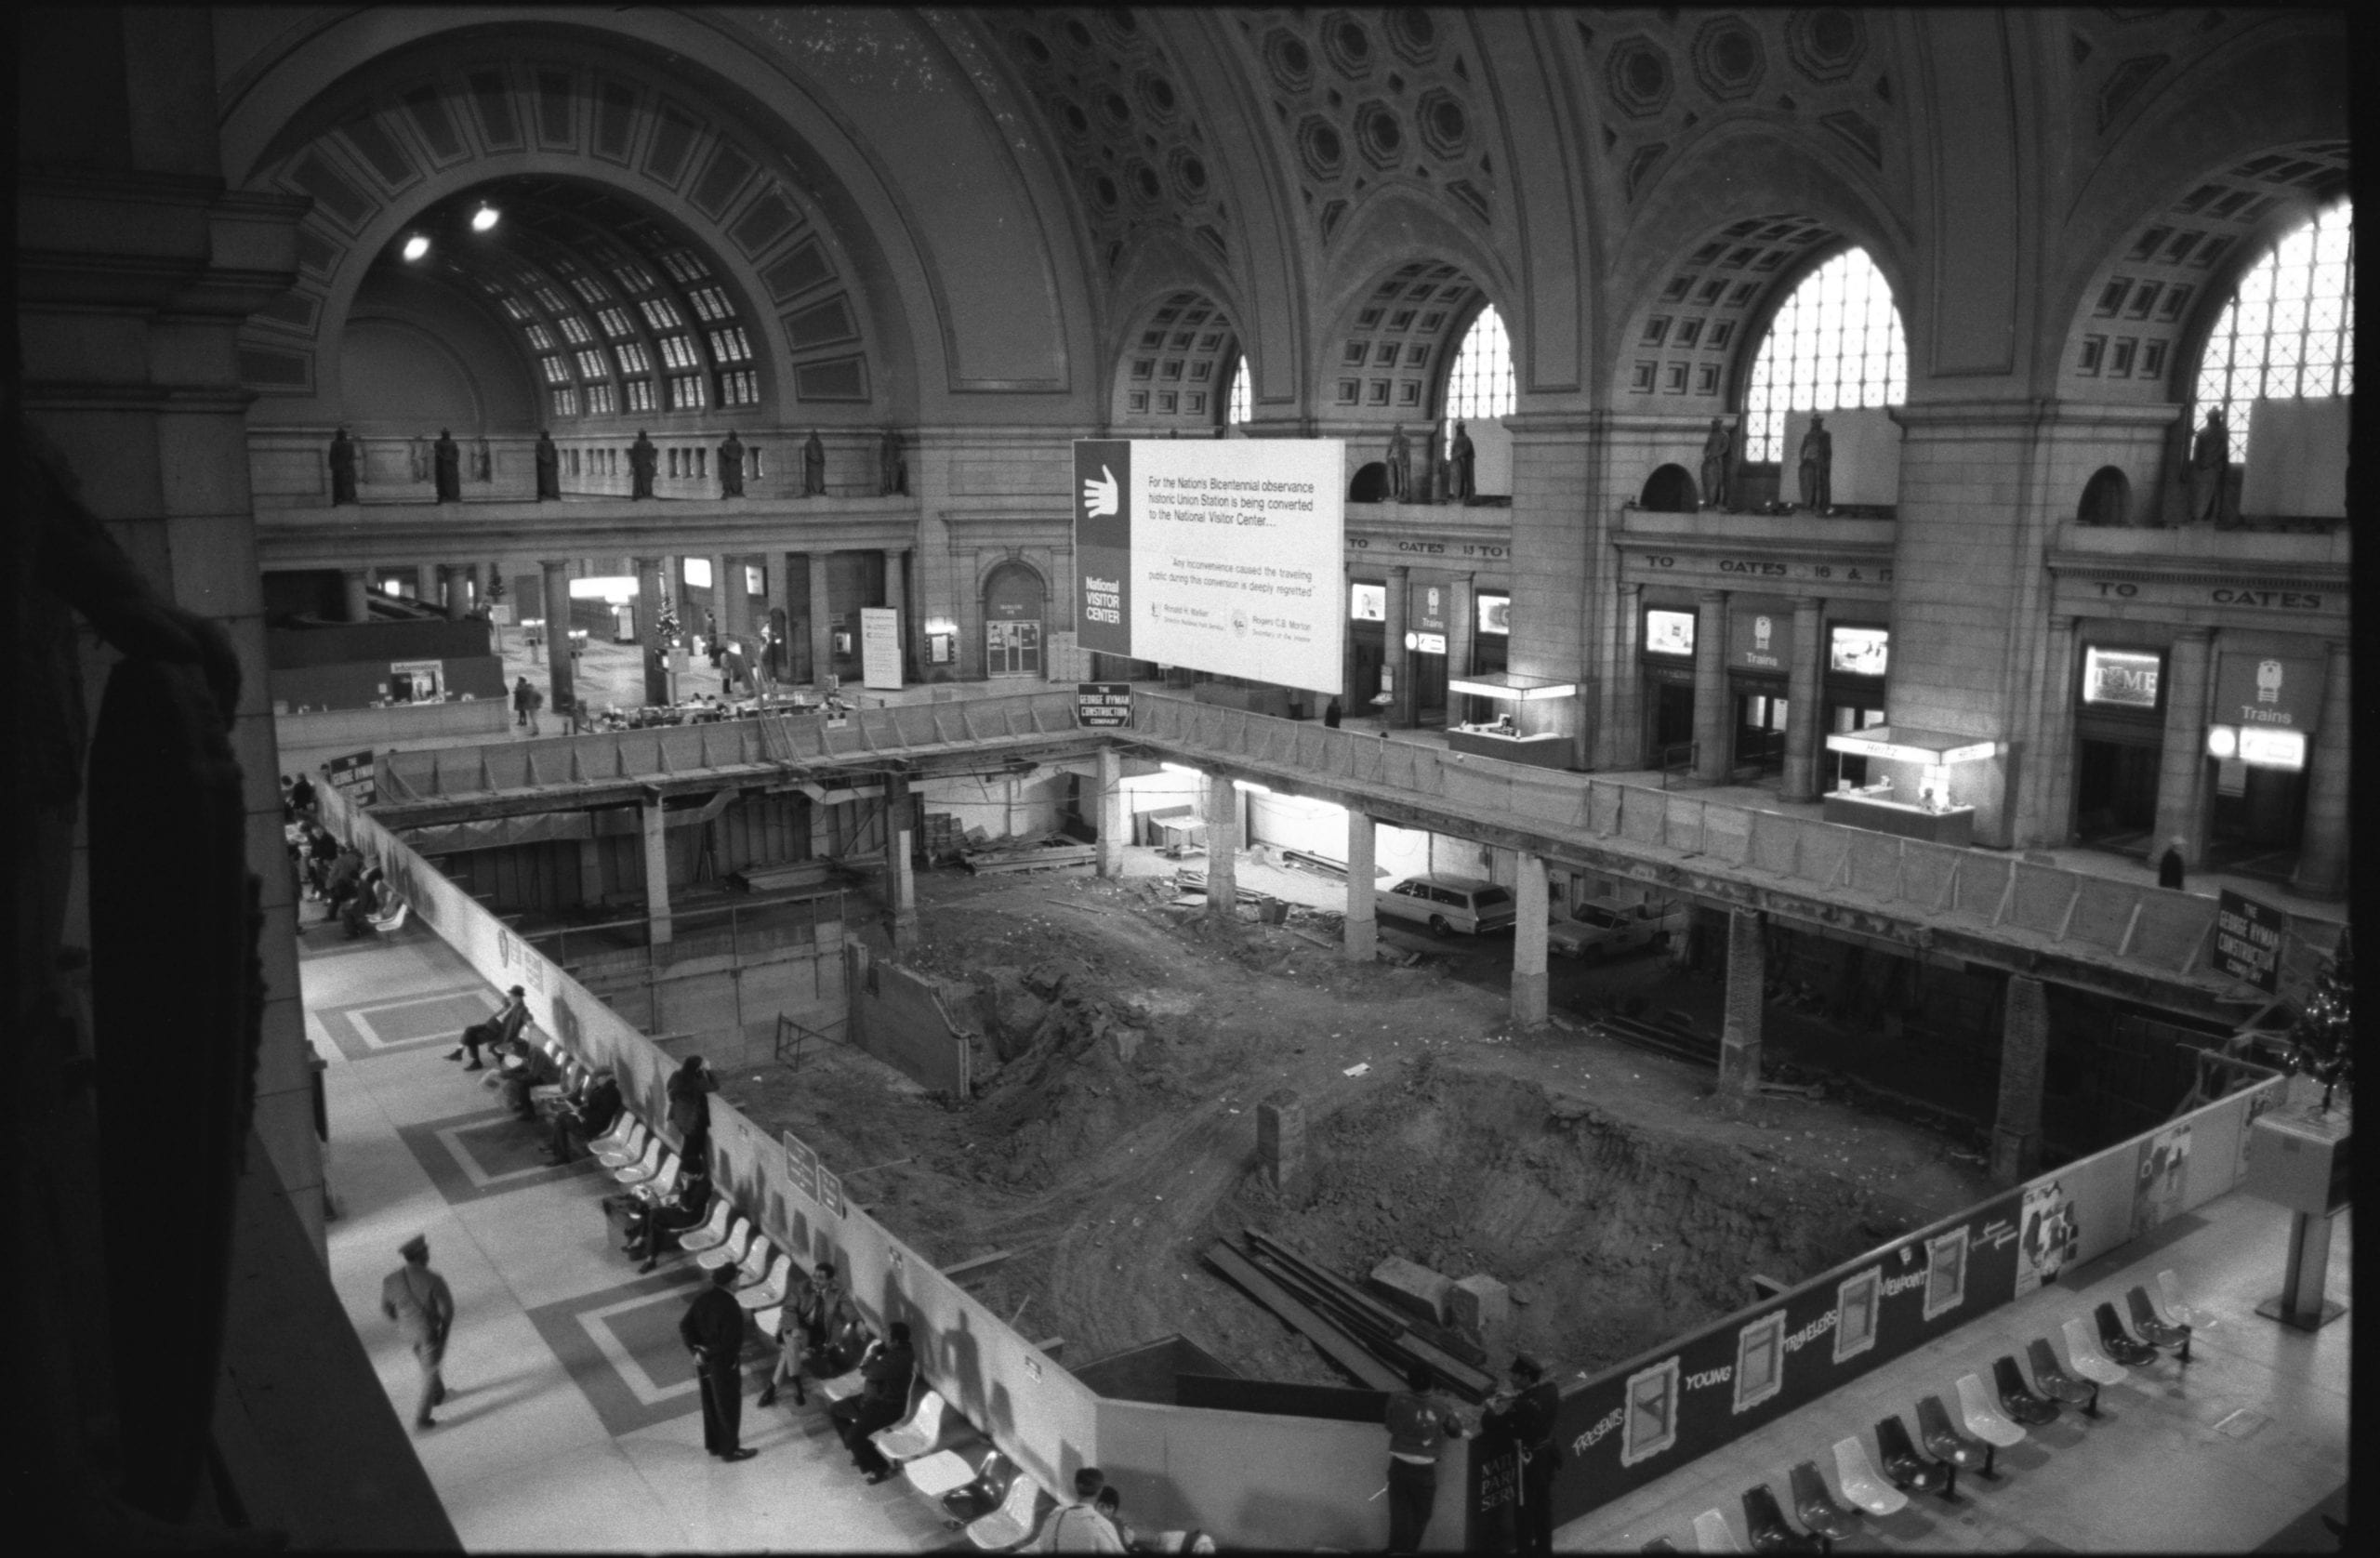 Union Station under construction in 1974